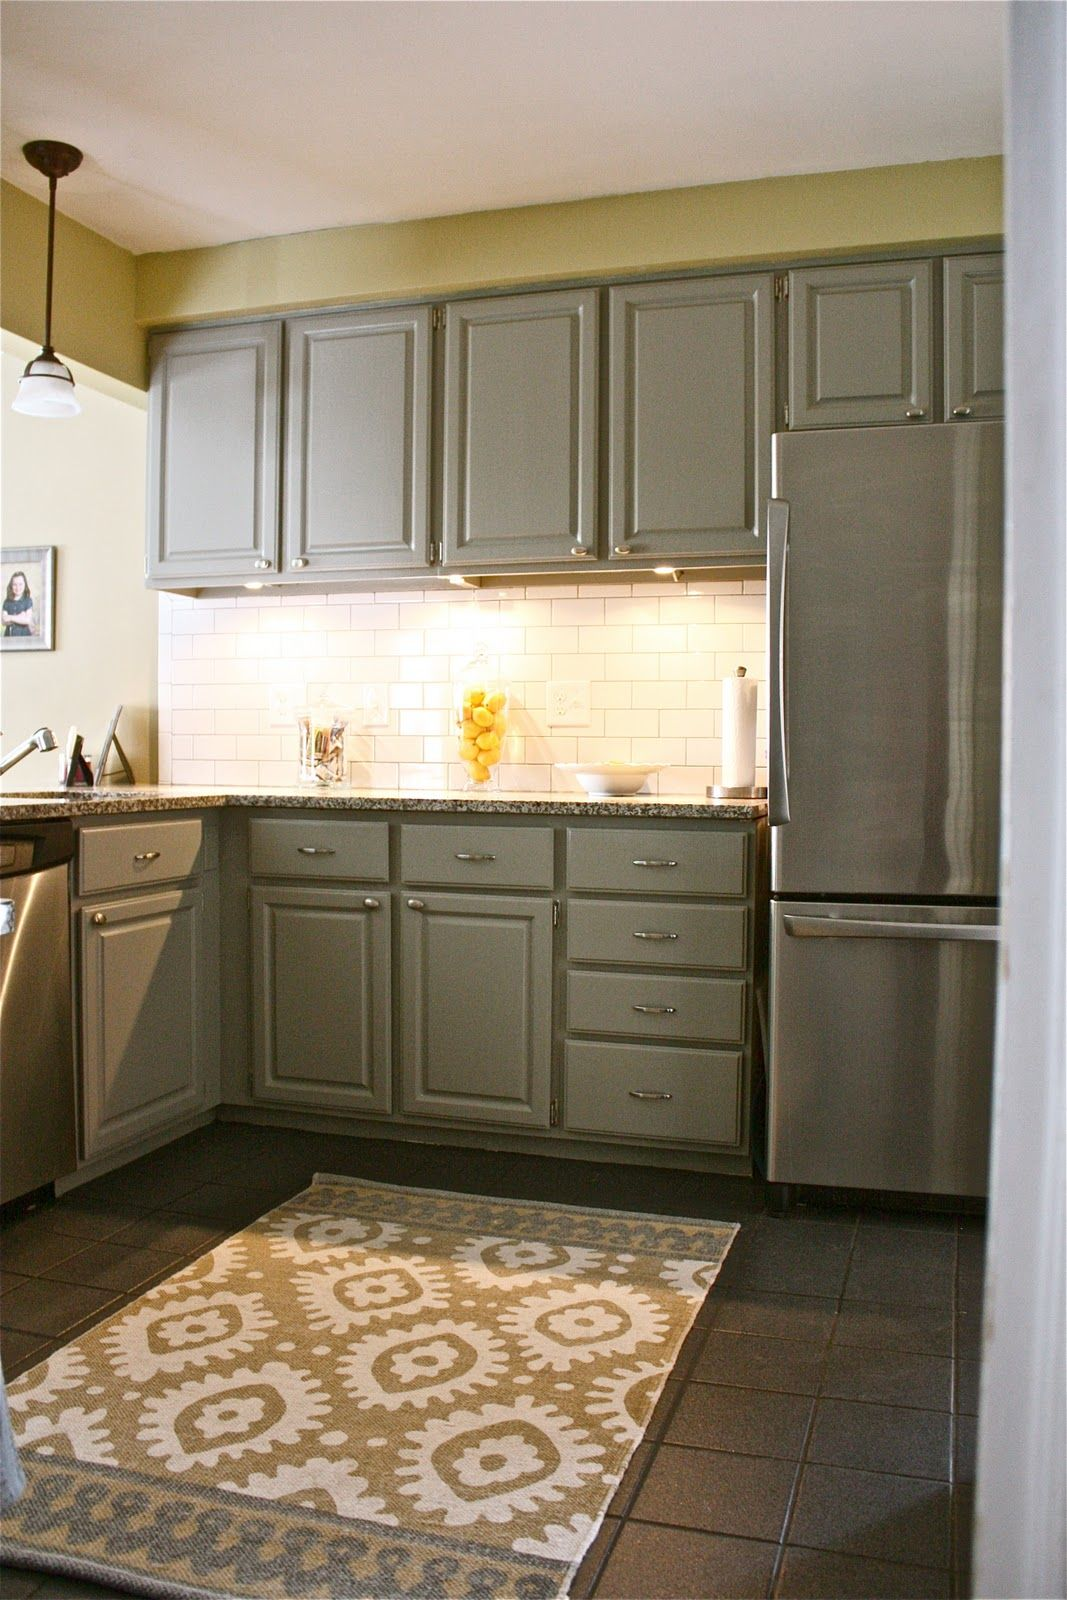 Omg This Kitchen The Colors The Style Everything Gray White